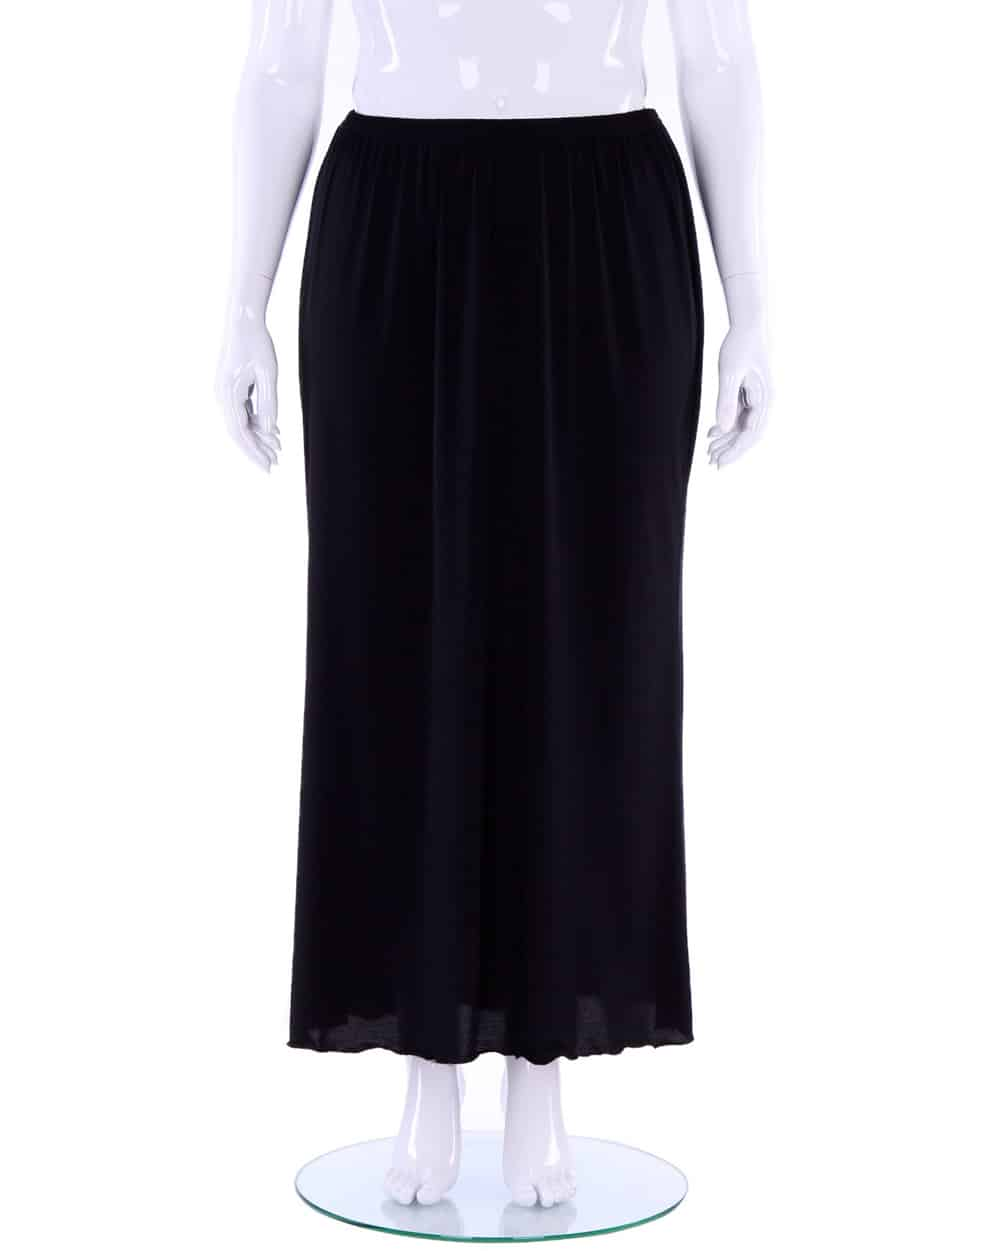 Full-Length-Plain-A-Line-Skirt-_-Black-1000